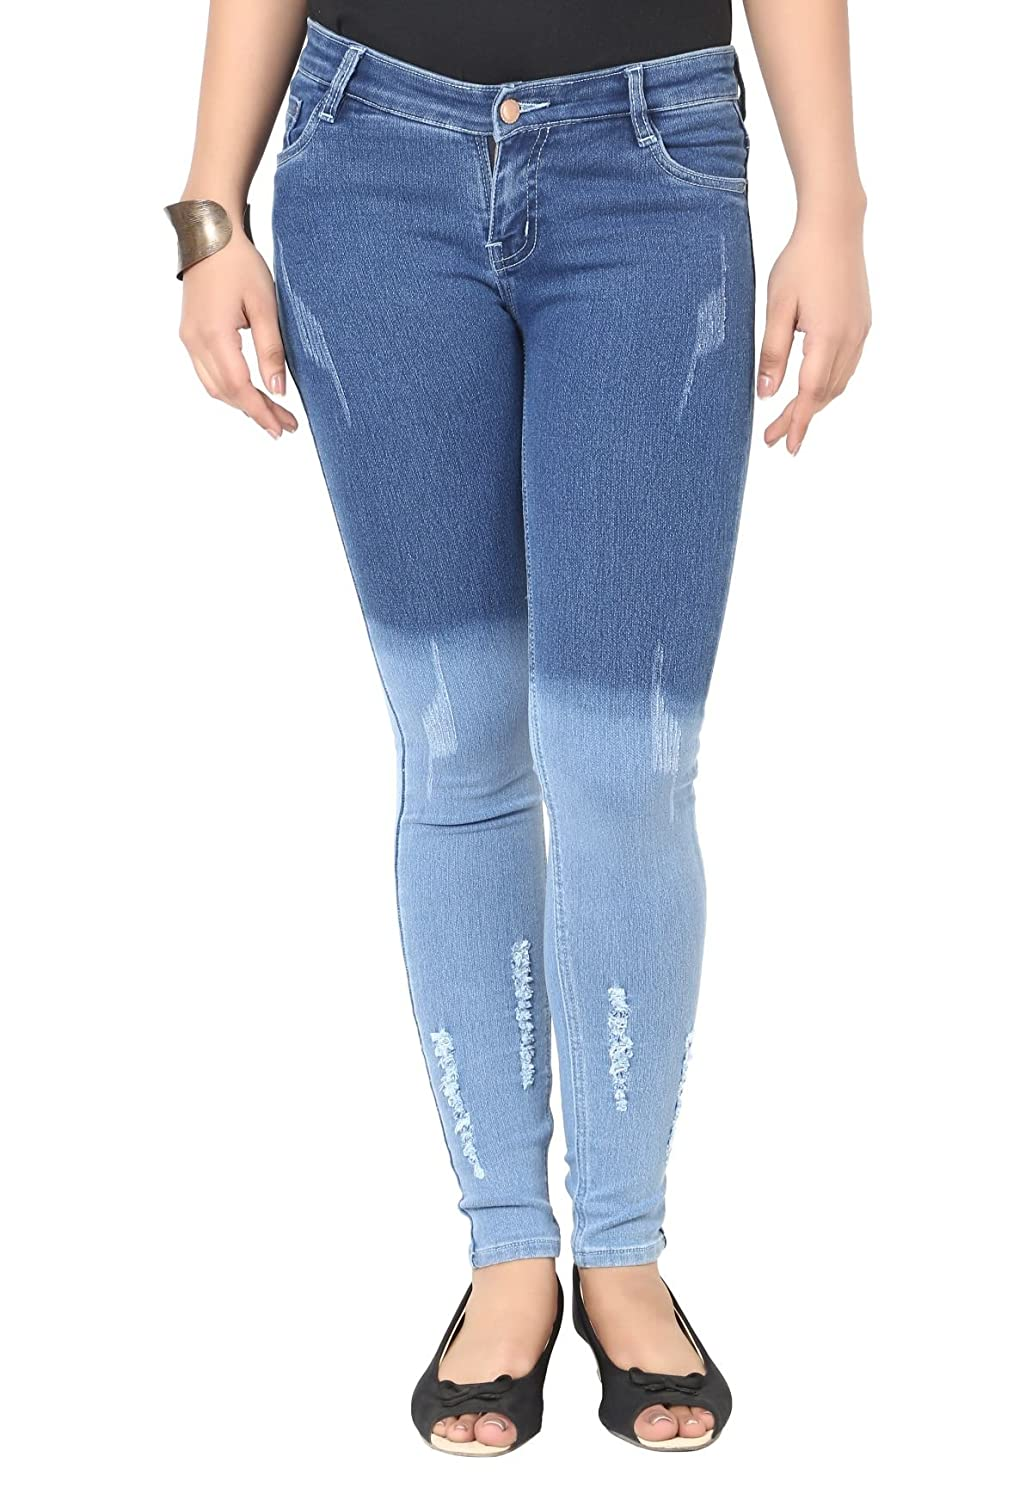 9271a03e6 Knight Vogue Light Blue Denim Lycra Slim Fit Casual Jeans for Women   Amazon.in  Clothing   Accessories